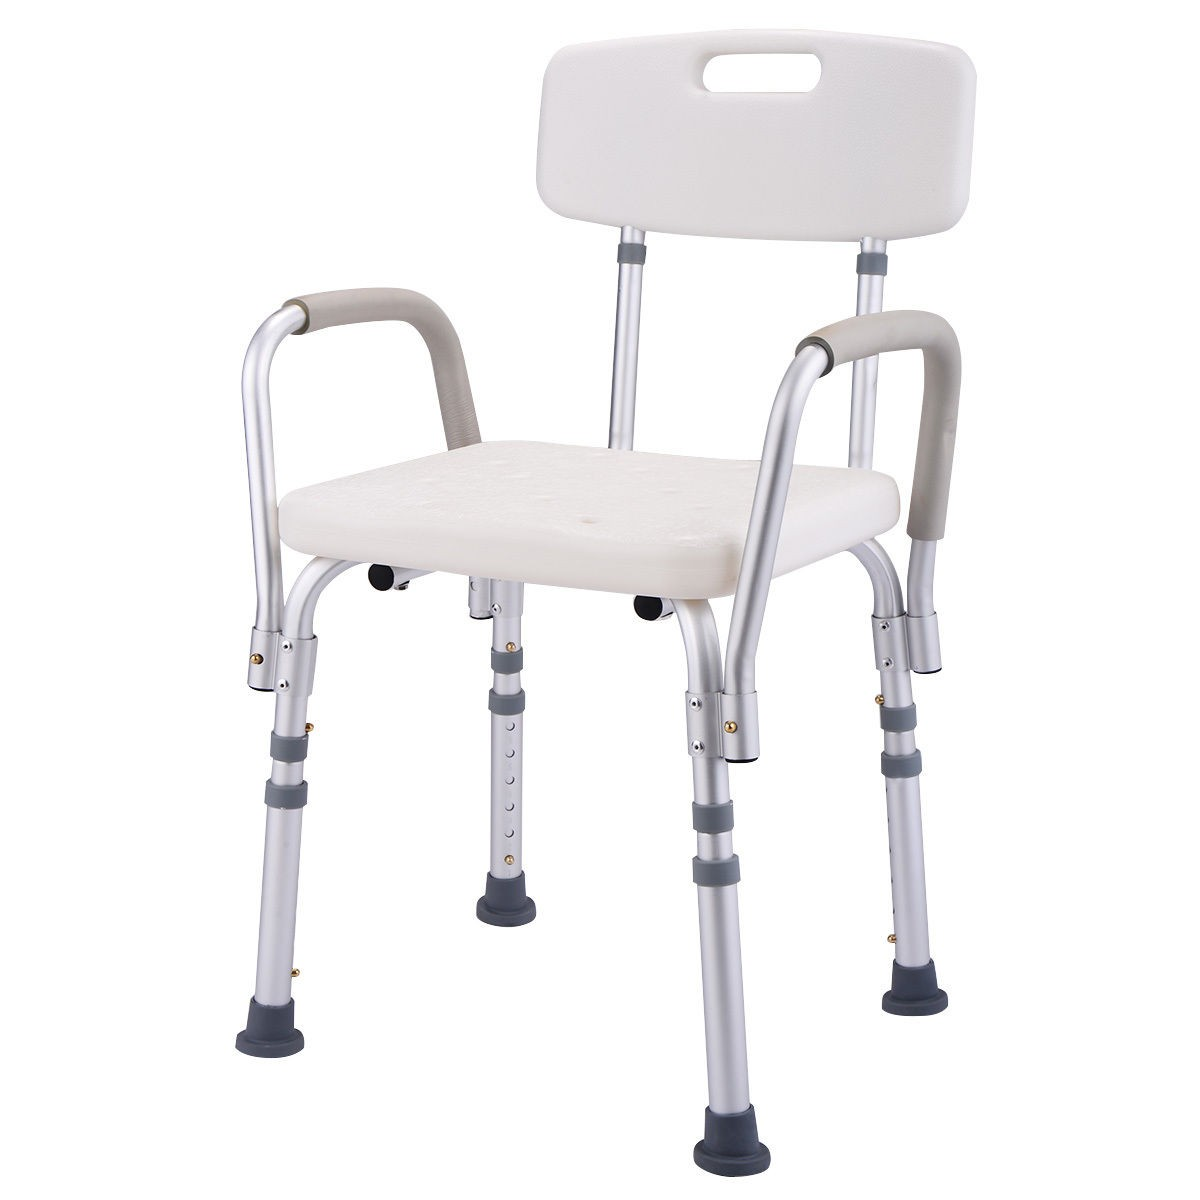 6 Height Adjustable Medical Shower Chair Stool Nanocare